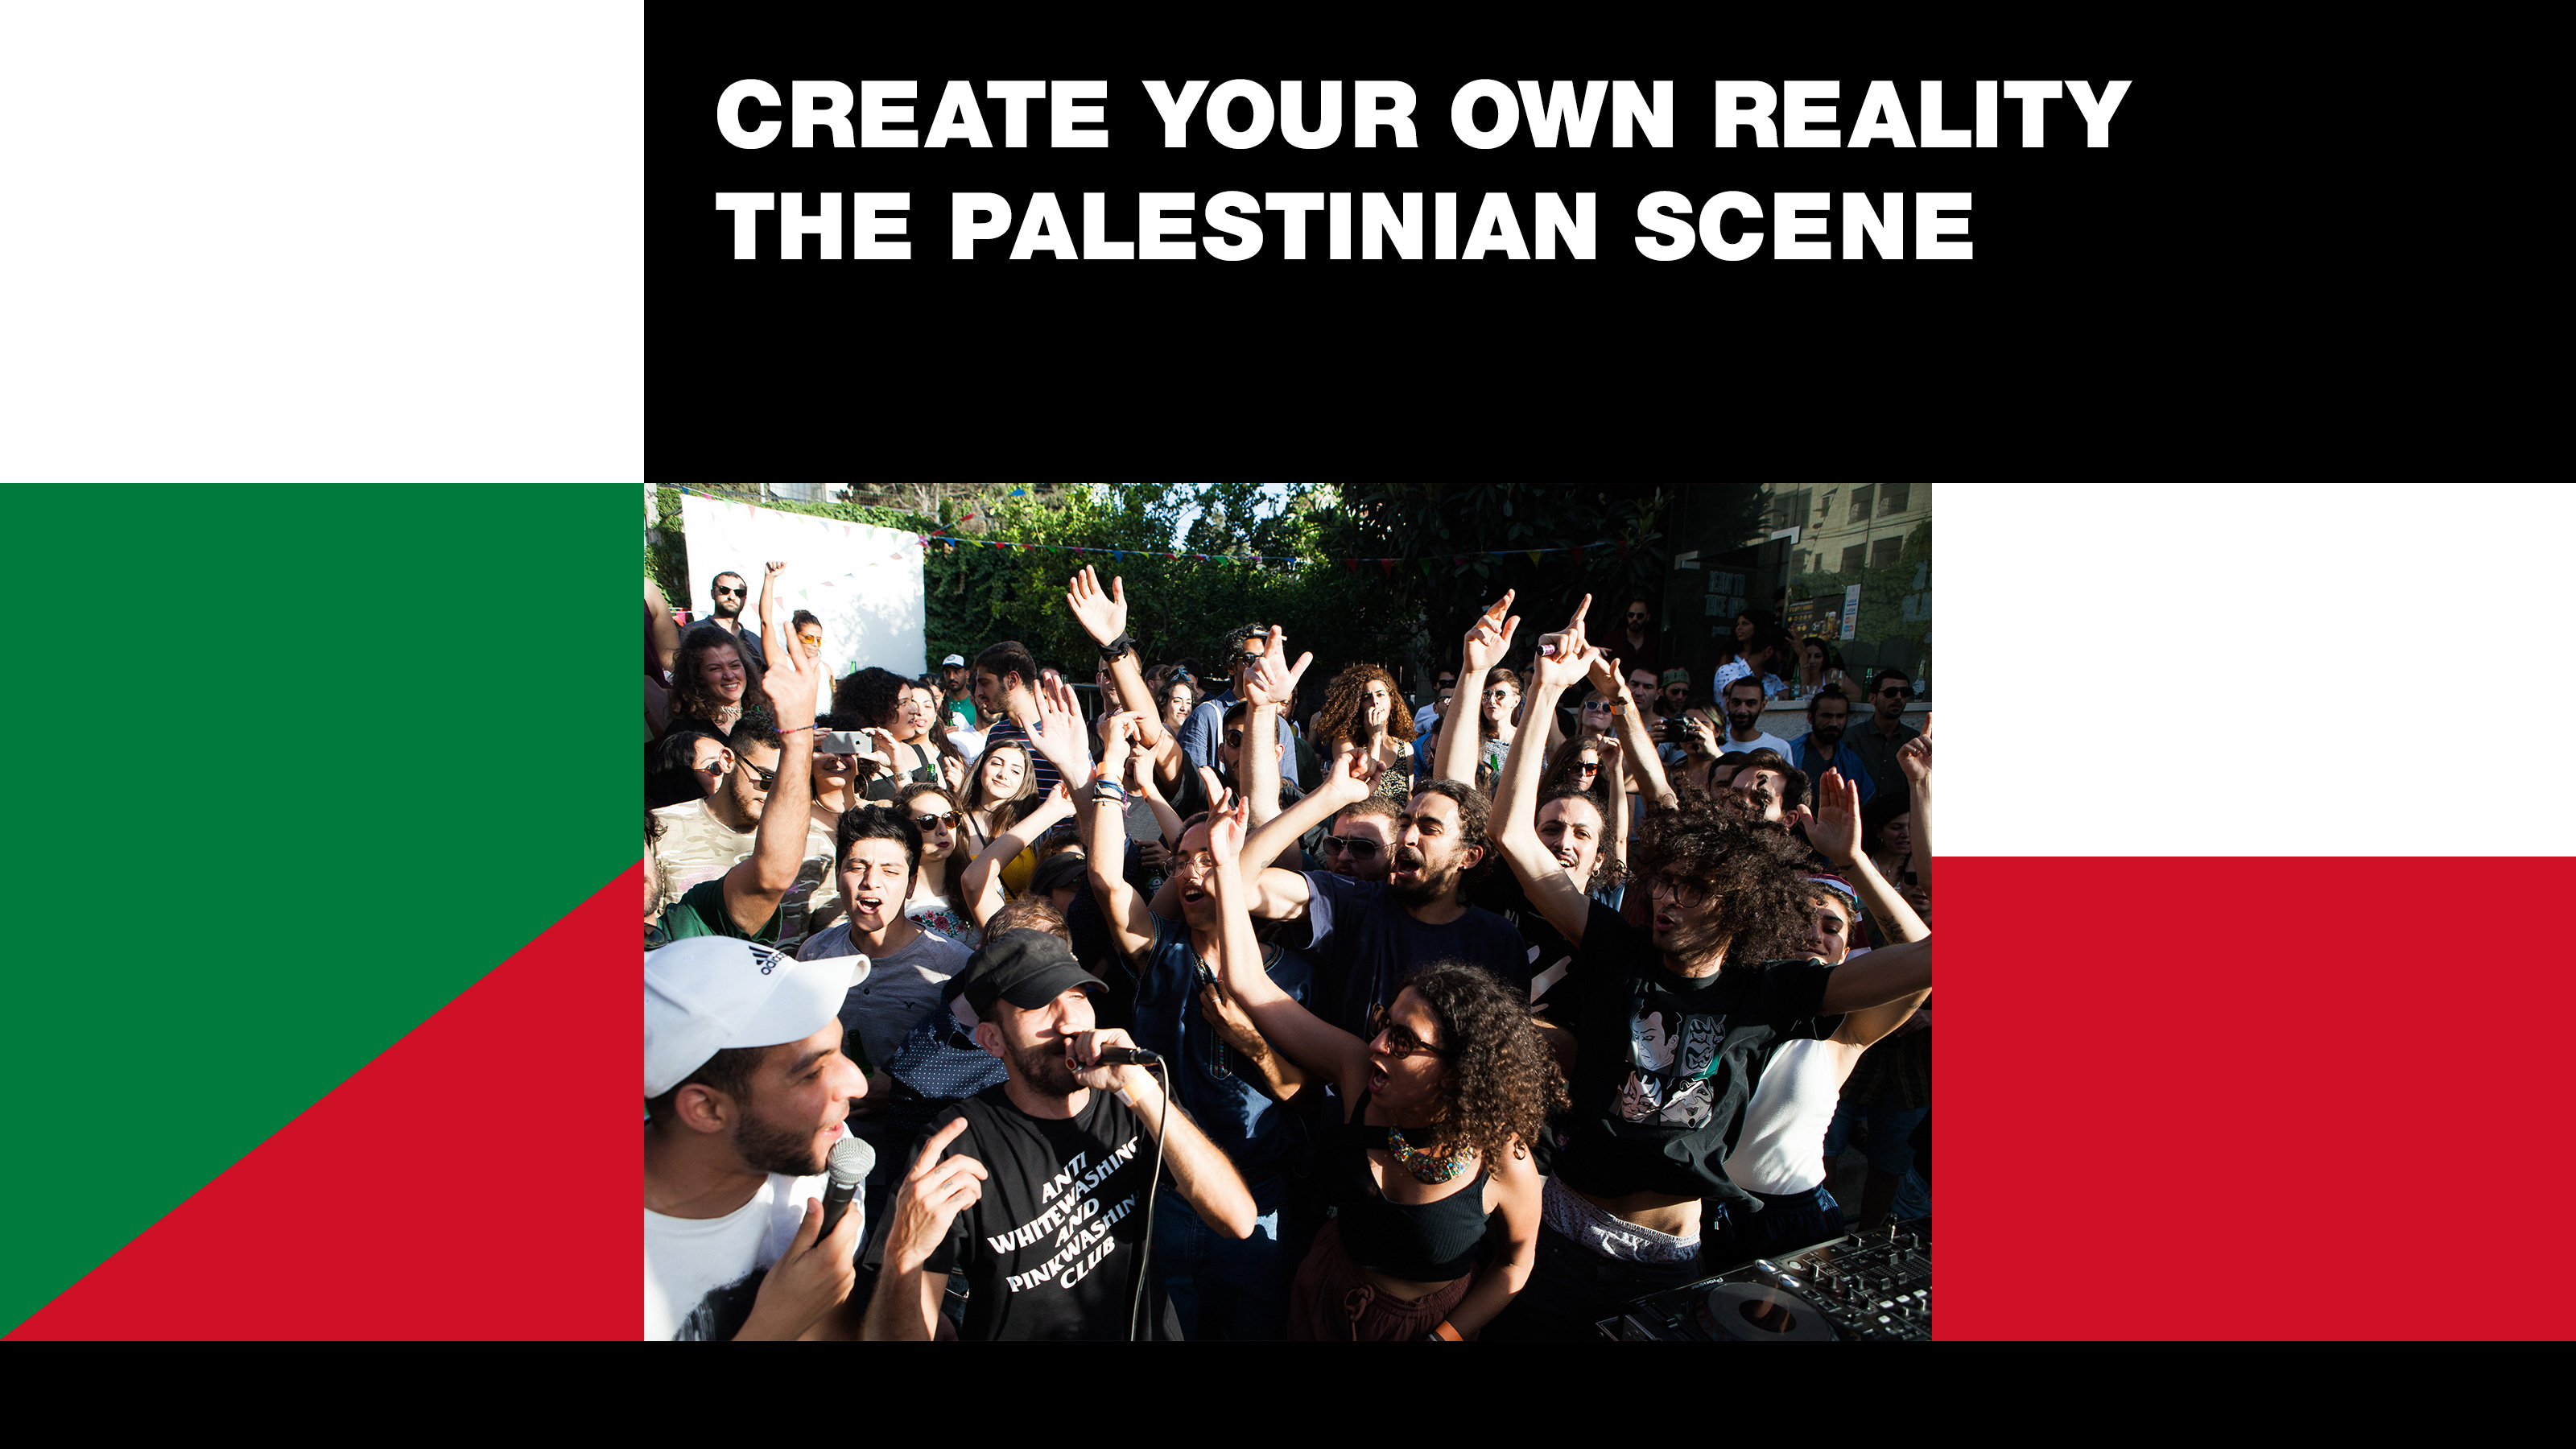 Ra Create Your Own Reality The Palestinian Scene